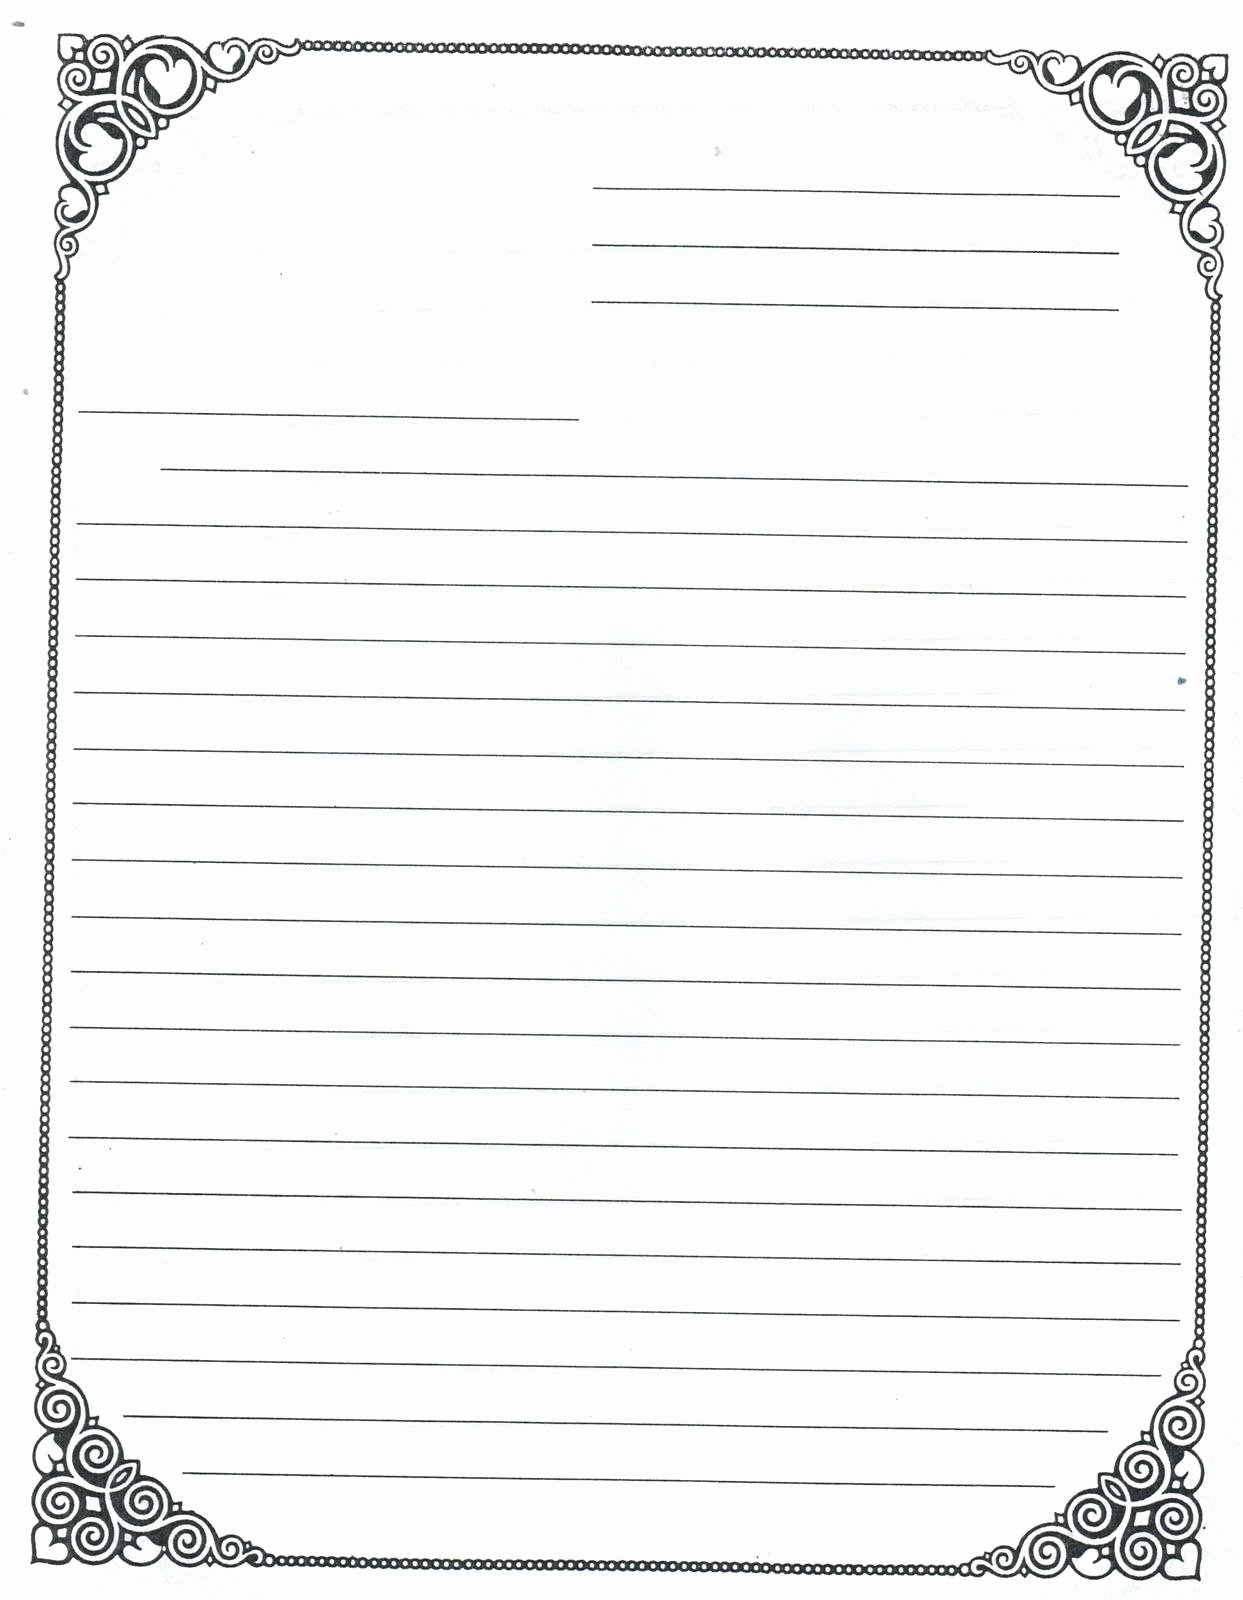 Letter Writing Paper Template Inspirational Lined Paper for Kids Printable